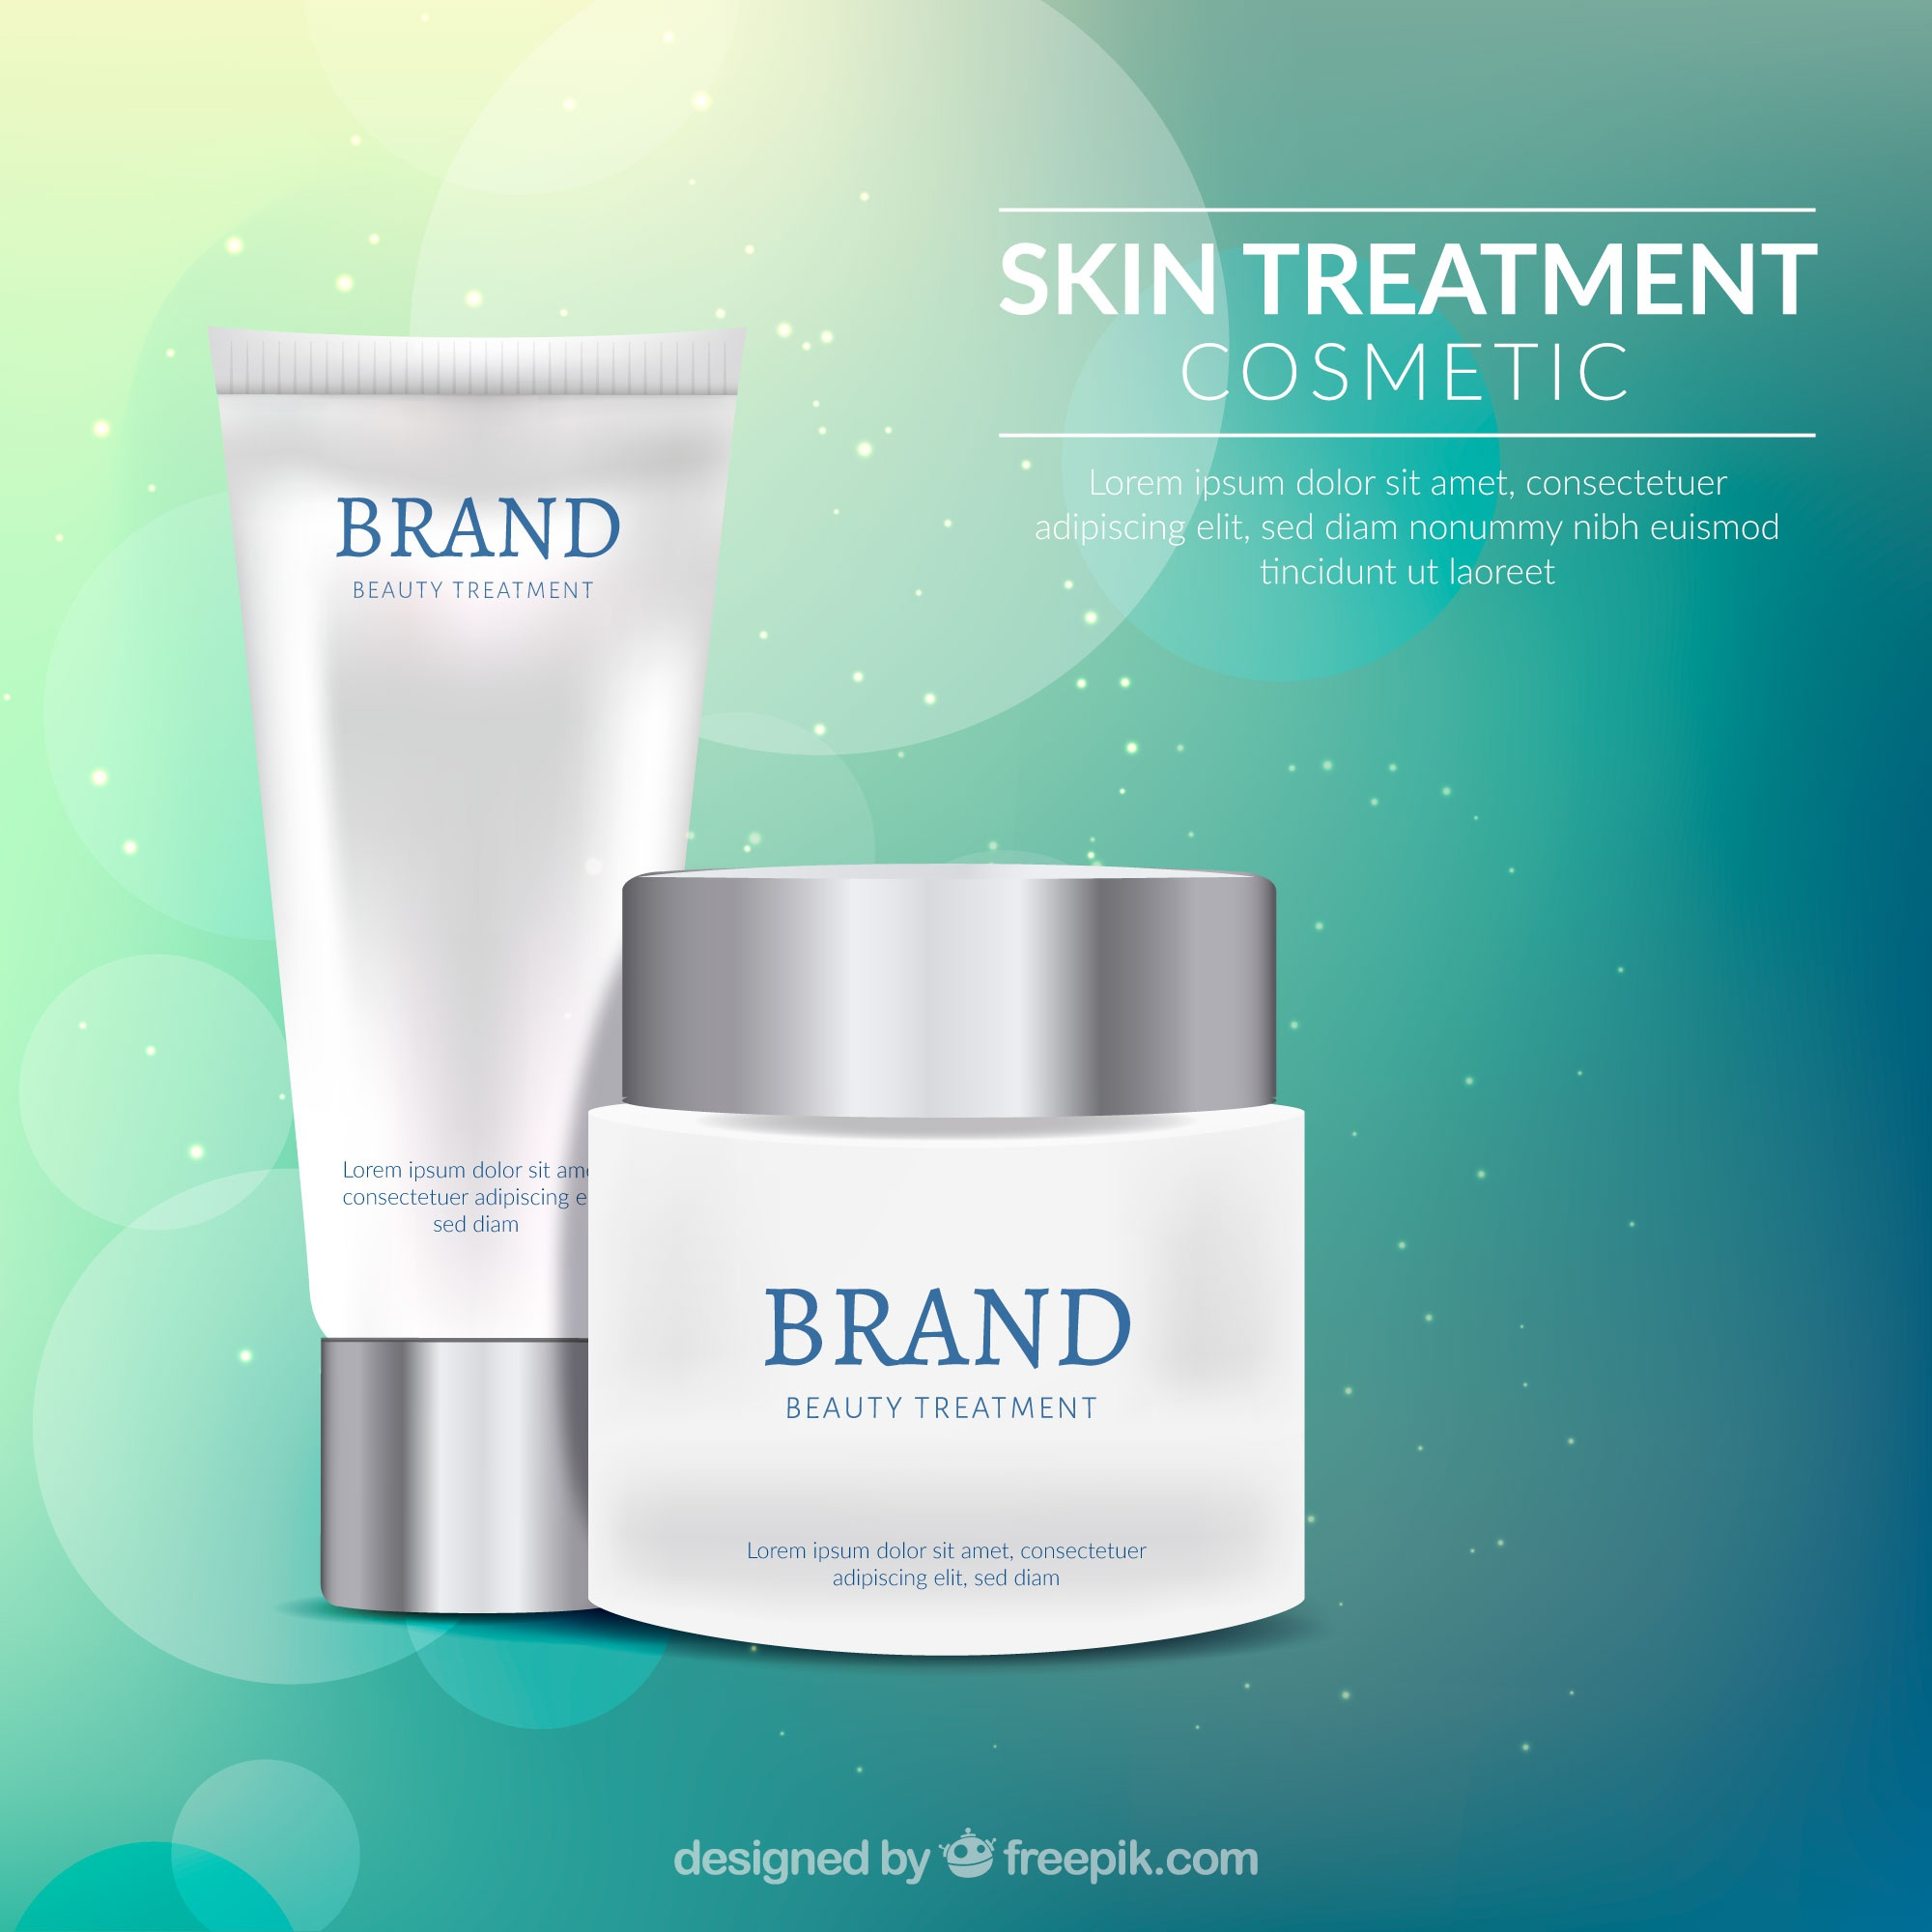 Skin treatment cosmetic